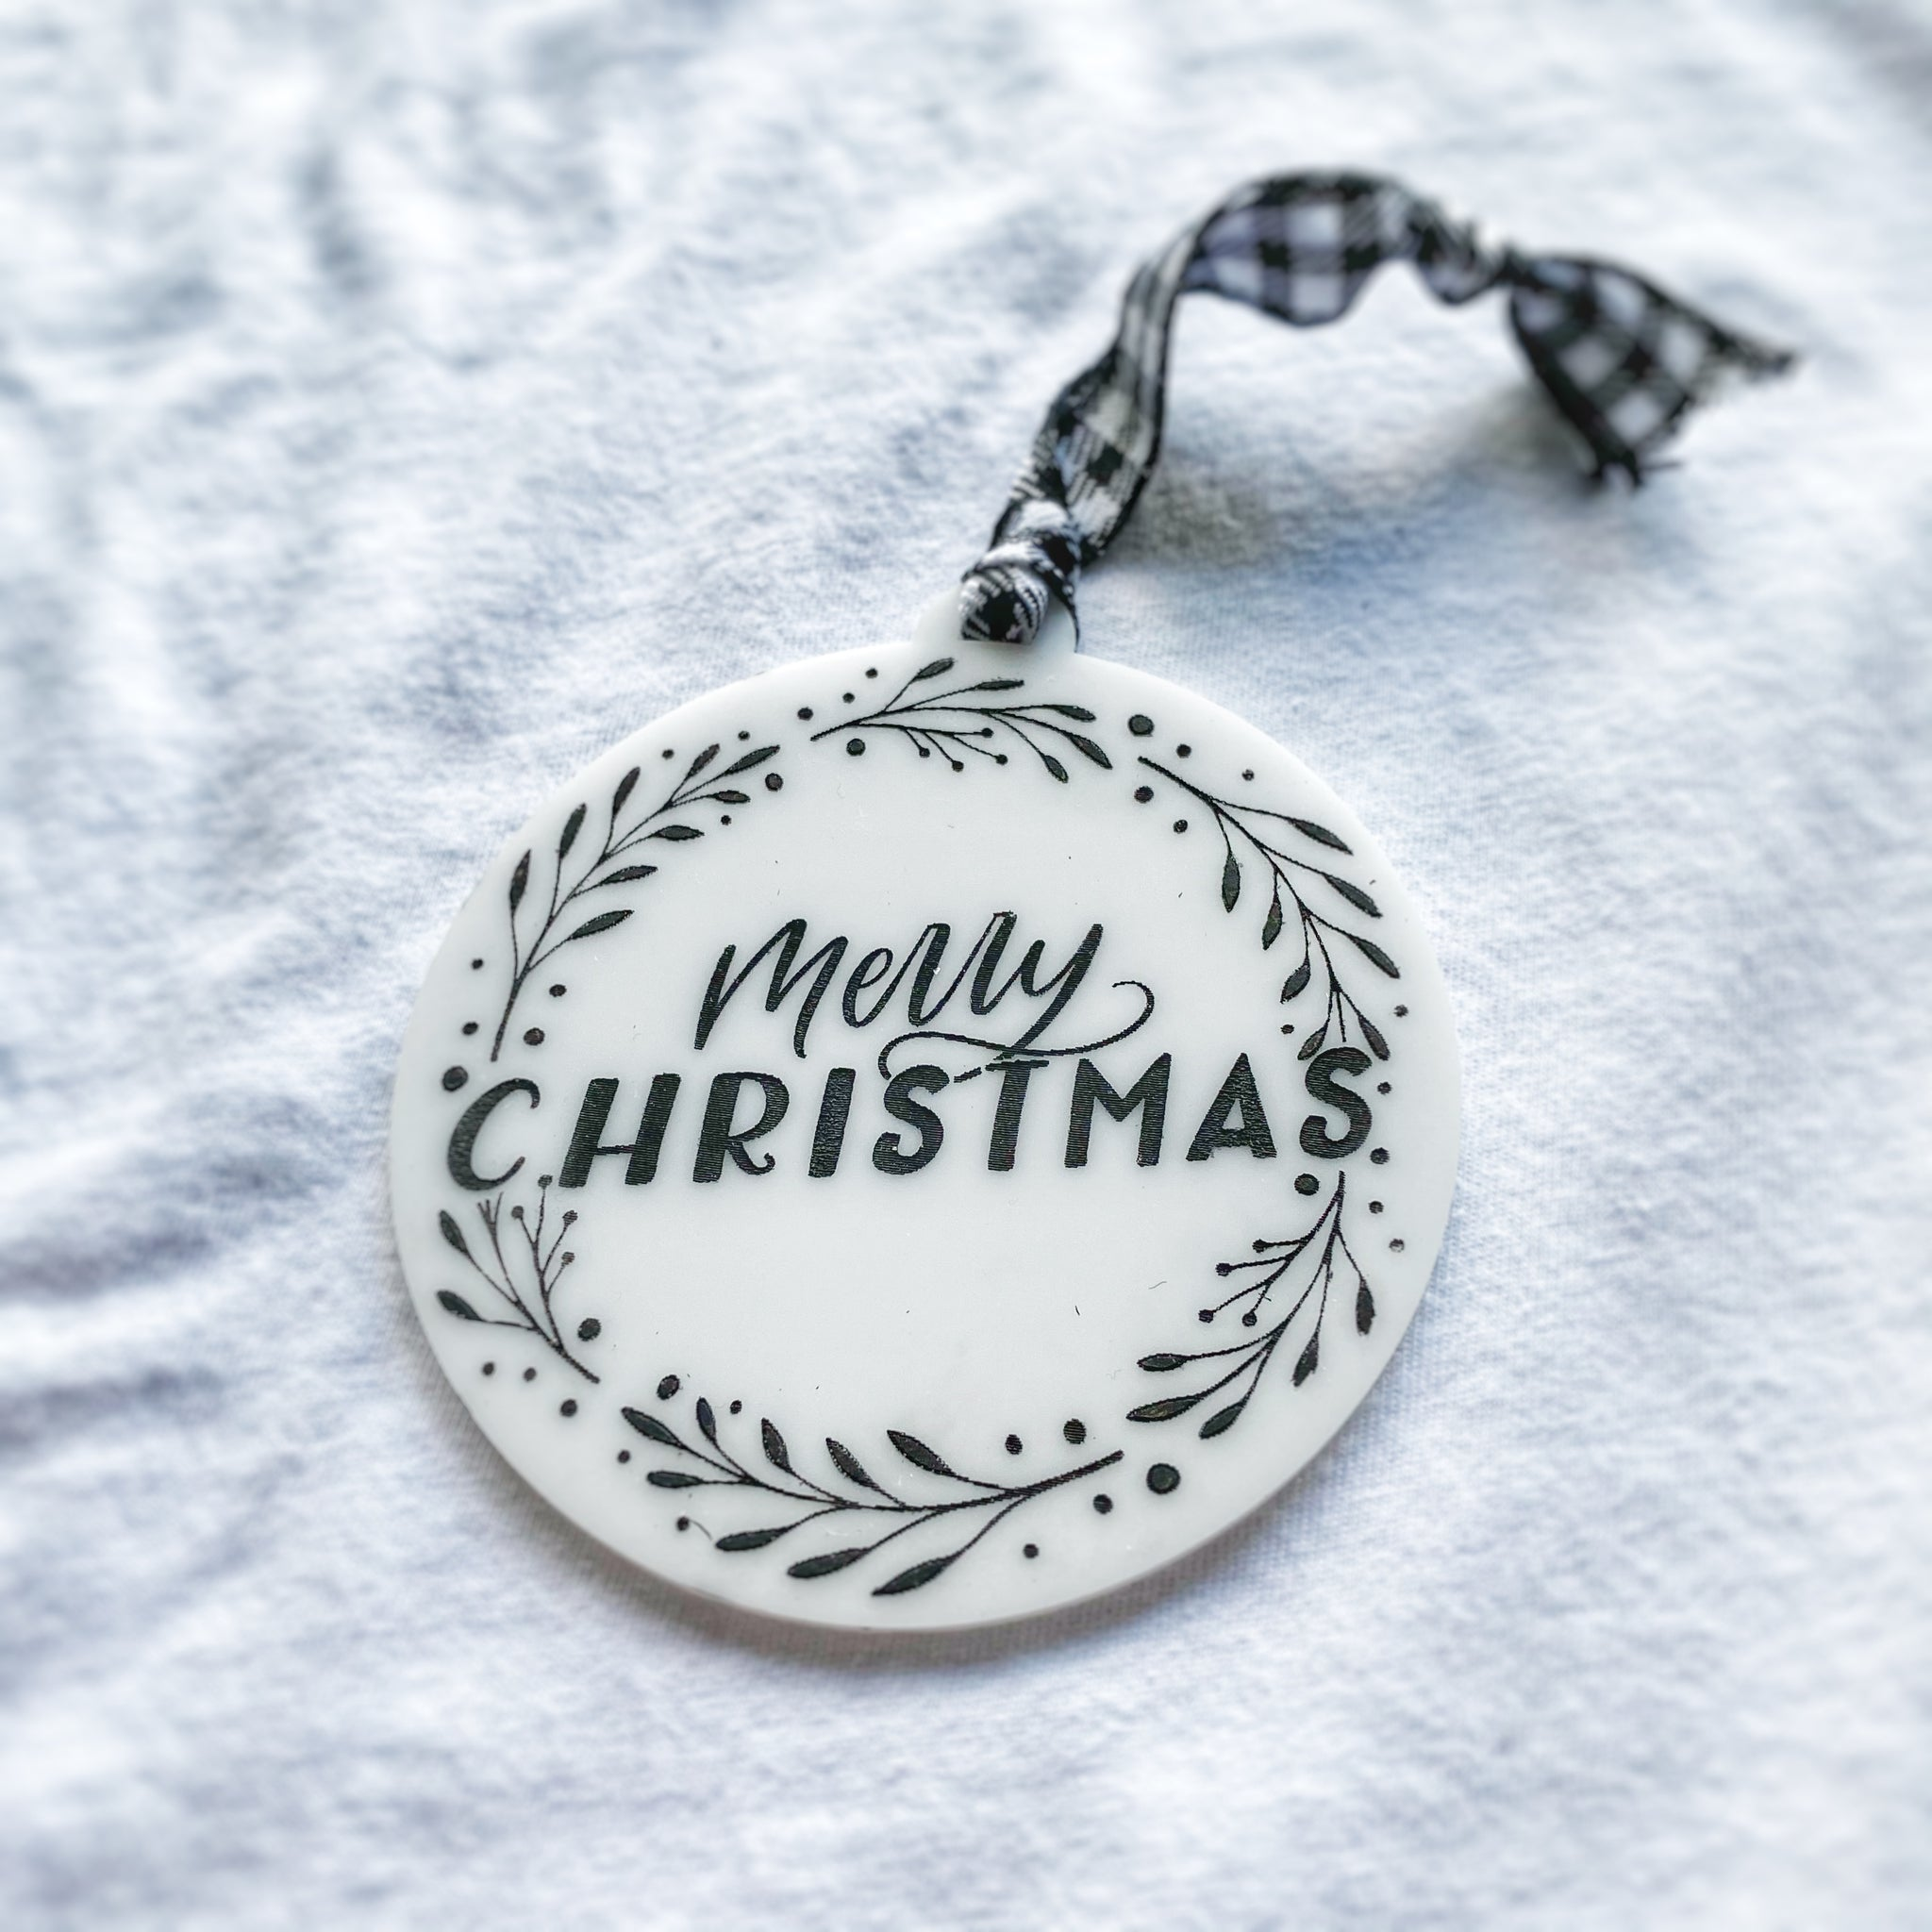 Merry Christmas Wreath Ornament